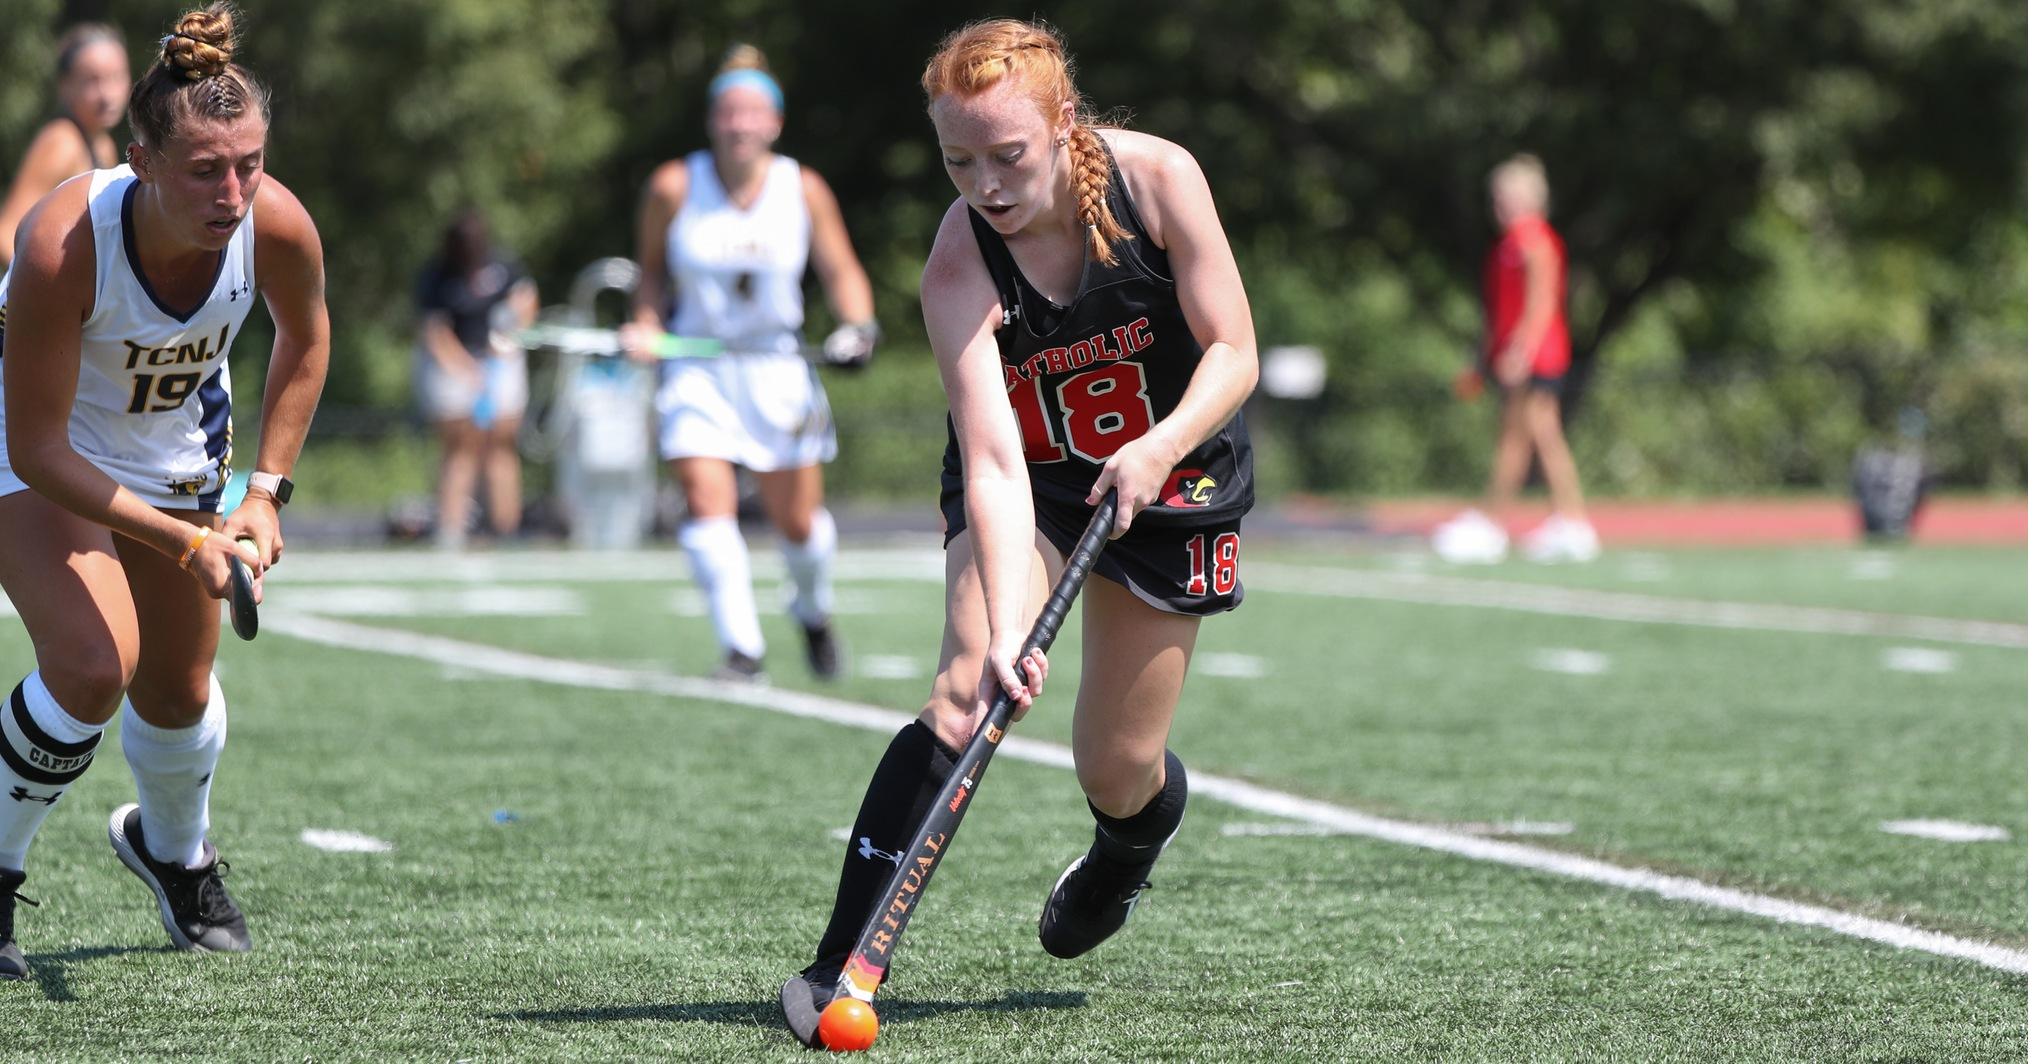 Cardinals Fall to No. 6 TCNJ in Home Opener